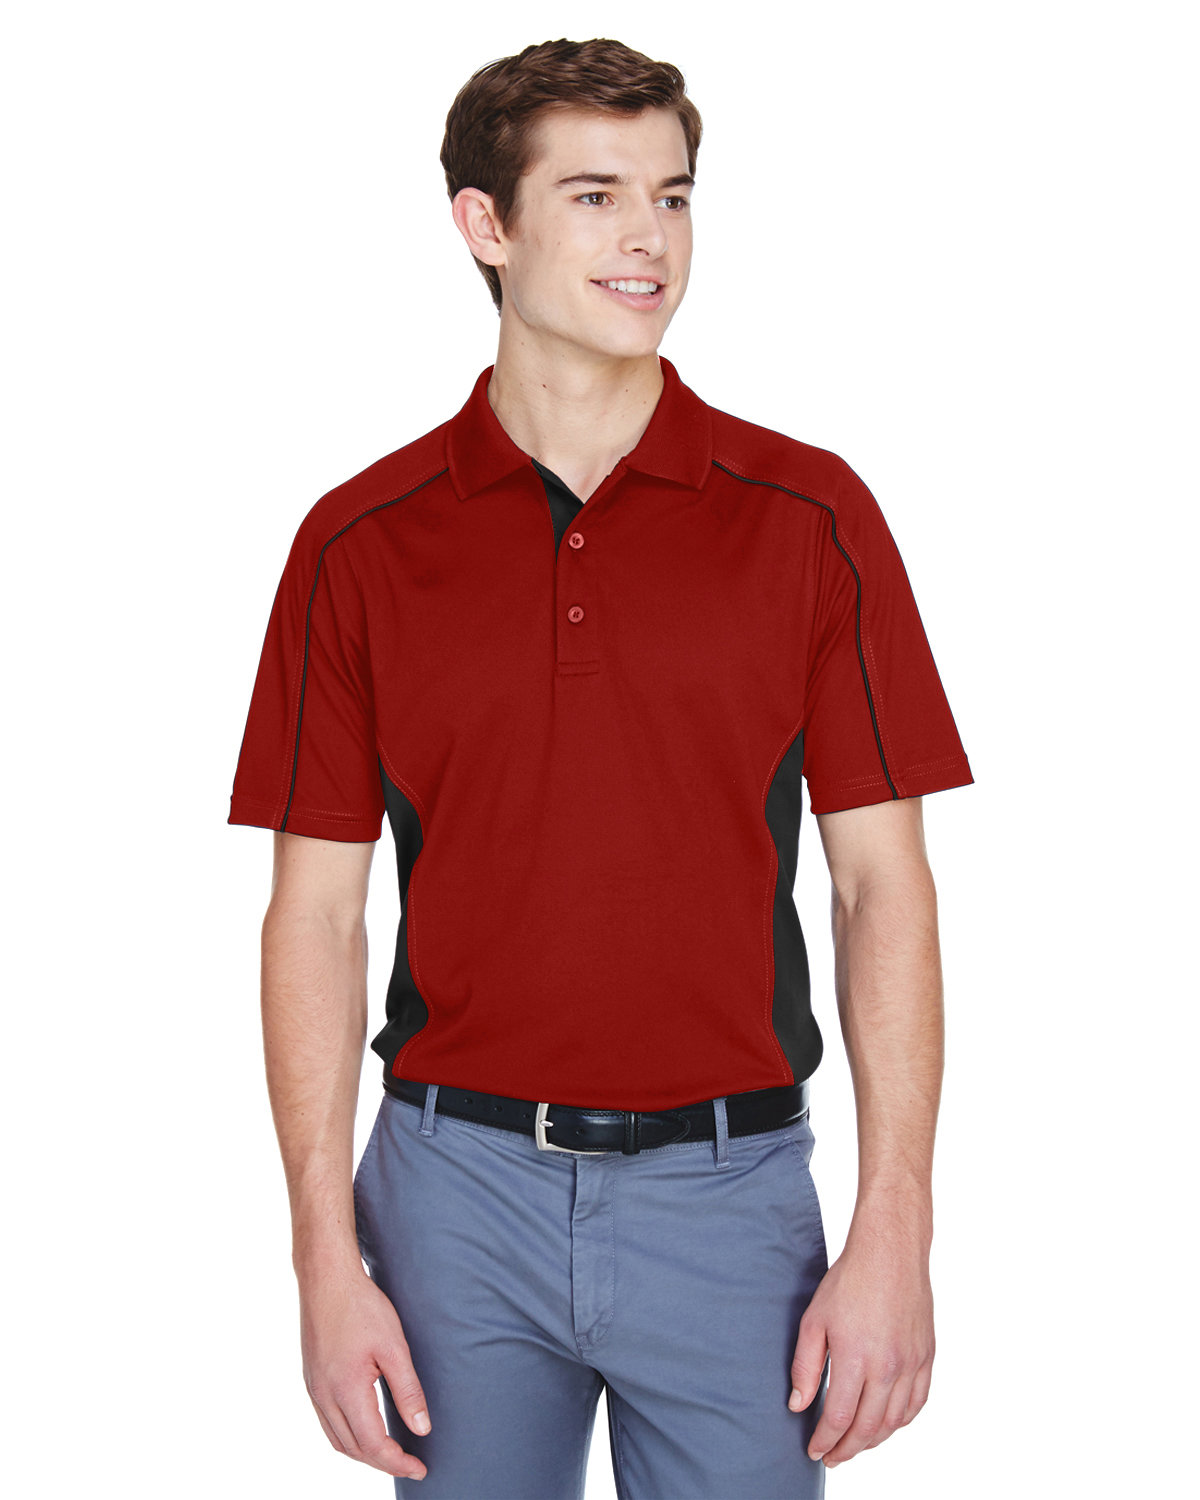 Extreme Men's Tall Eperformance™ Fuse Snag Protection Plus Colorblock Polo CLASSIC RED/ BLK